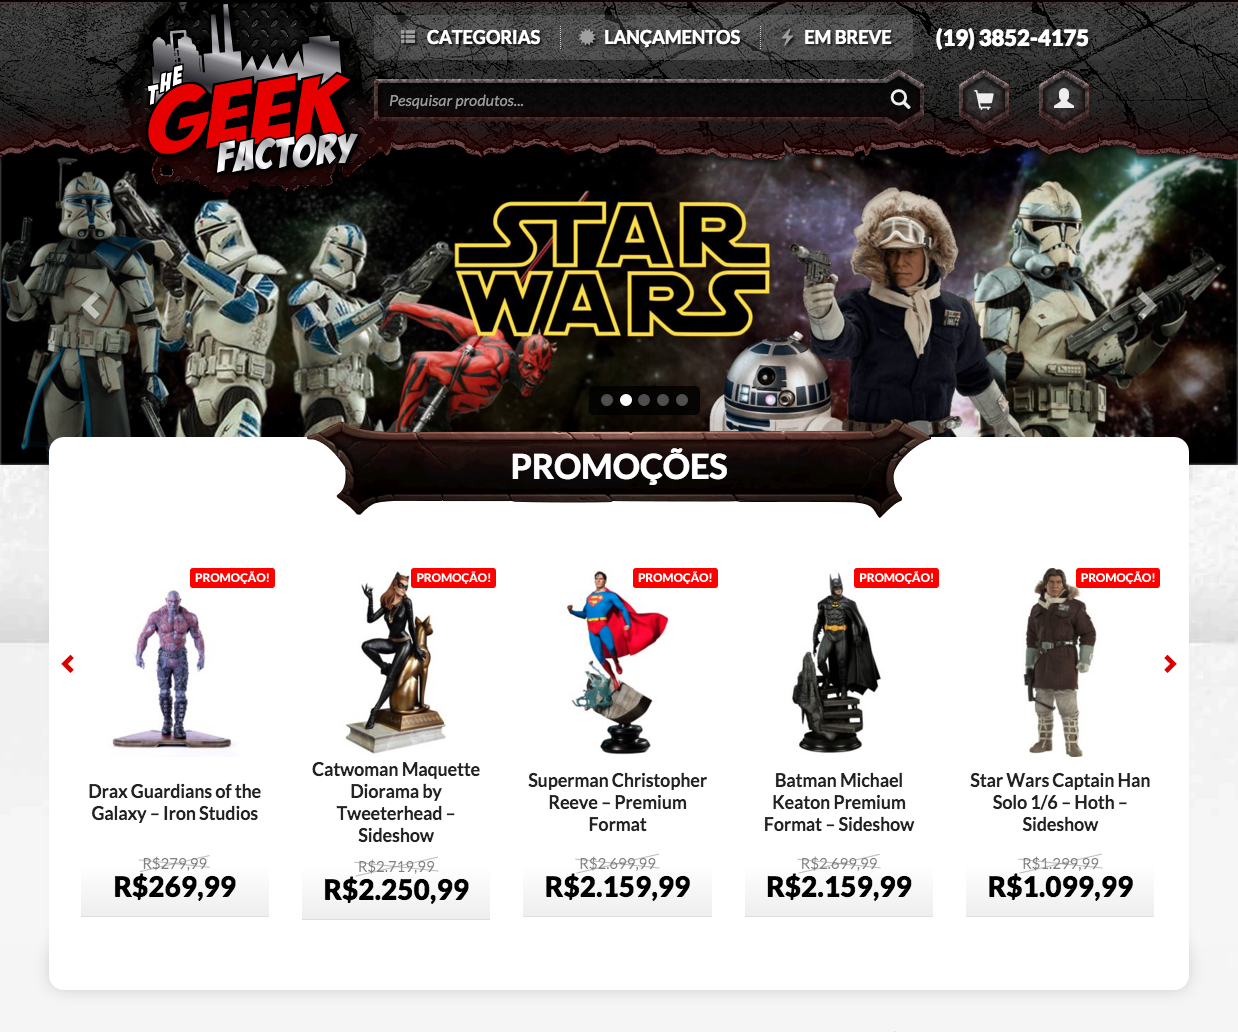 The Geek Factory website designed with WooCommerce